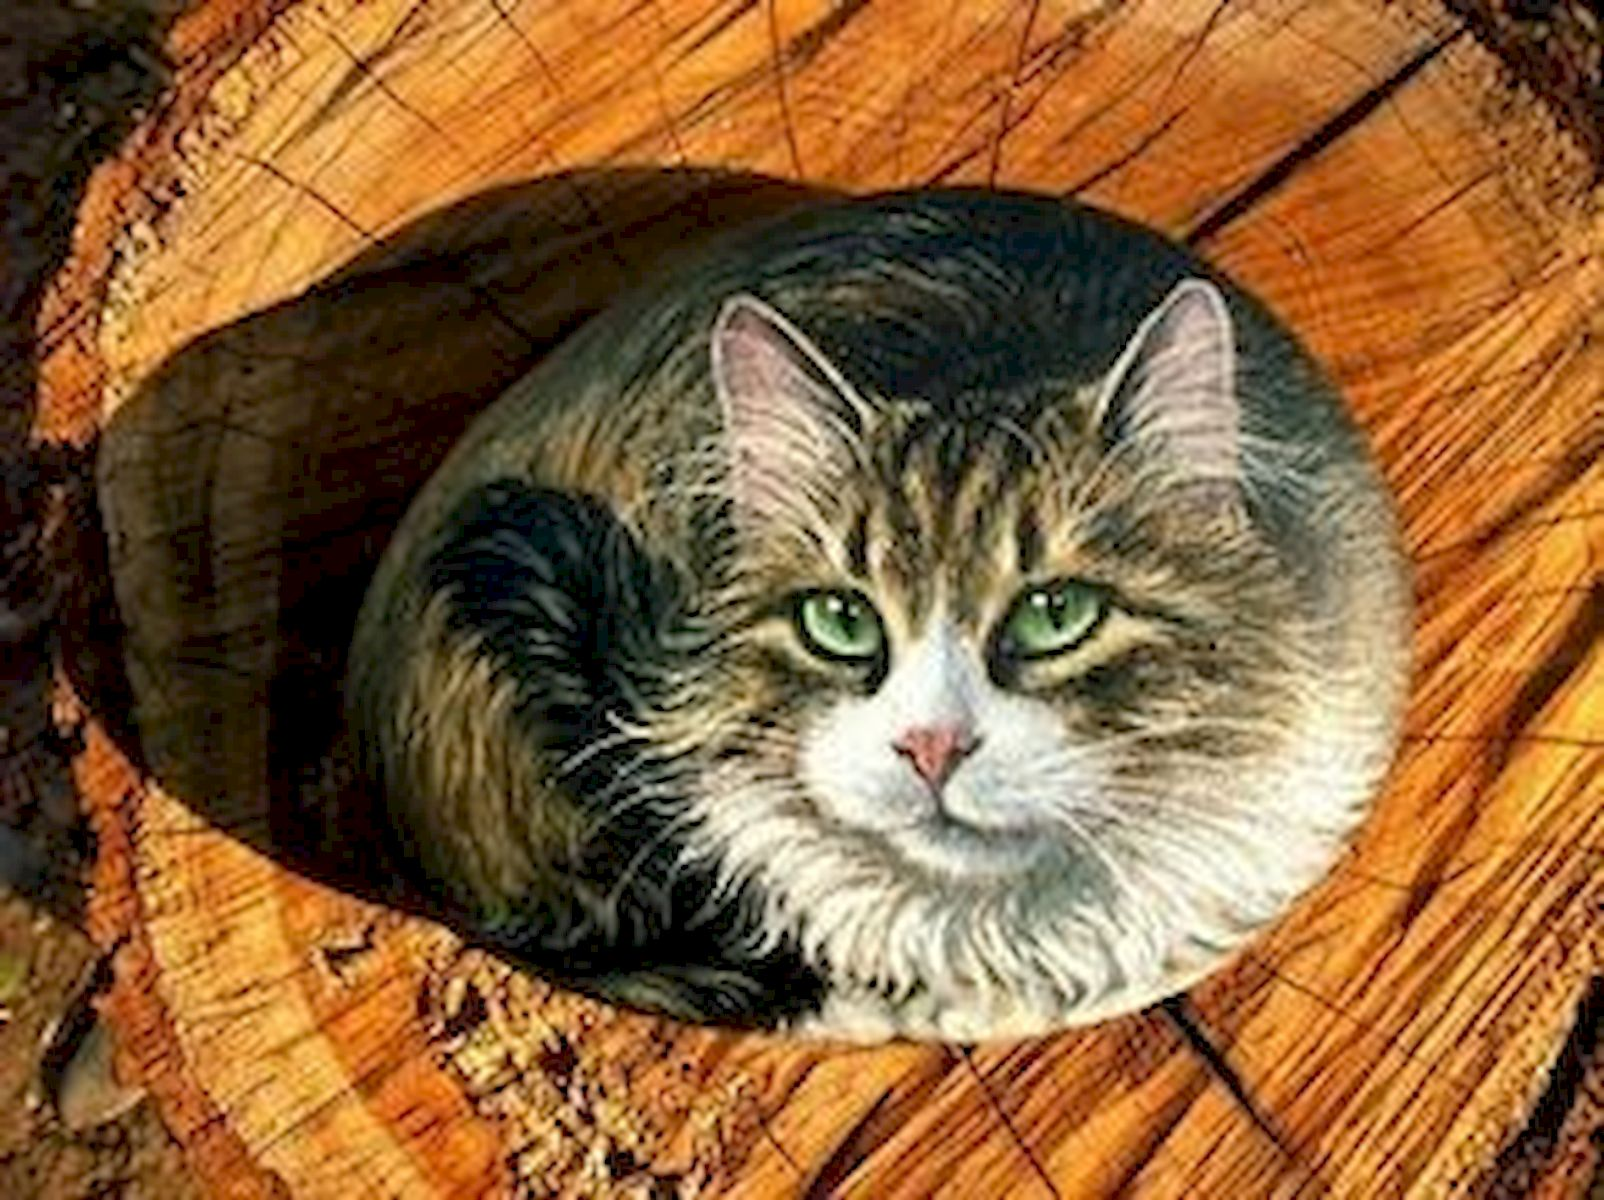 50 Best DIY Painted Rocks Animals Cats for Summer Ideas (46)